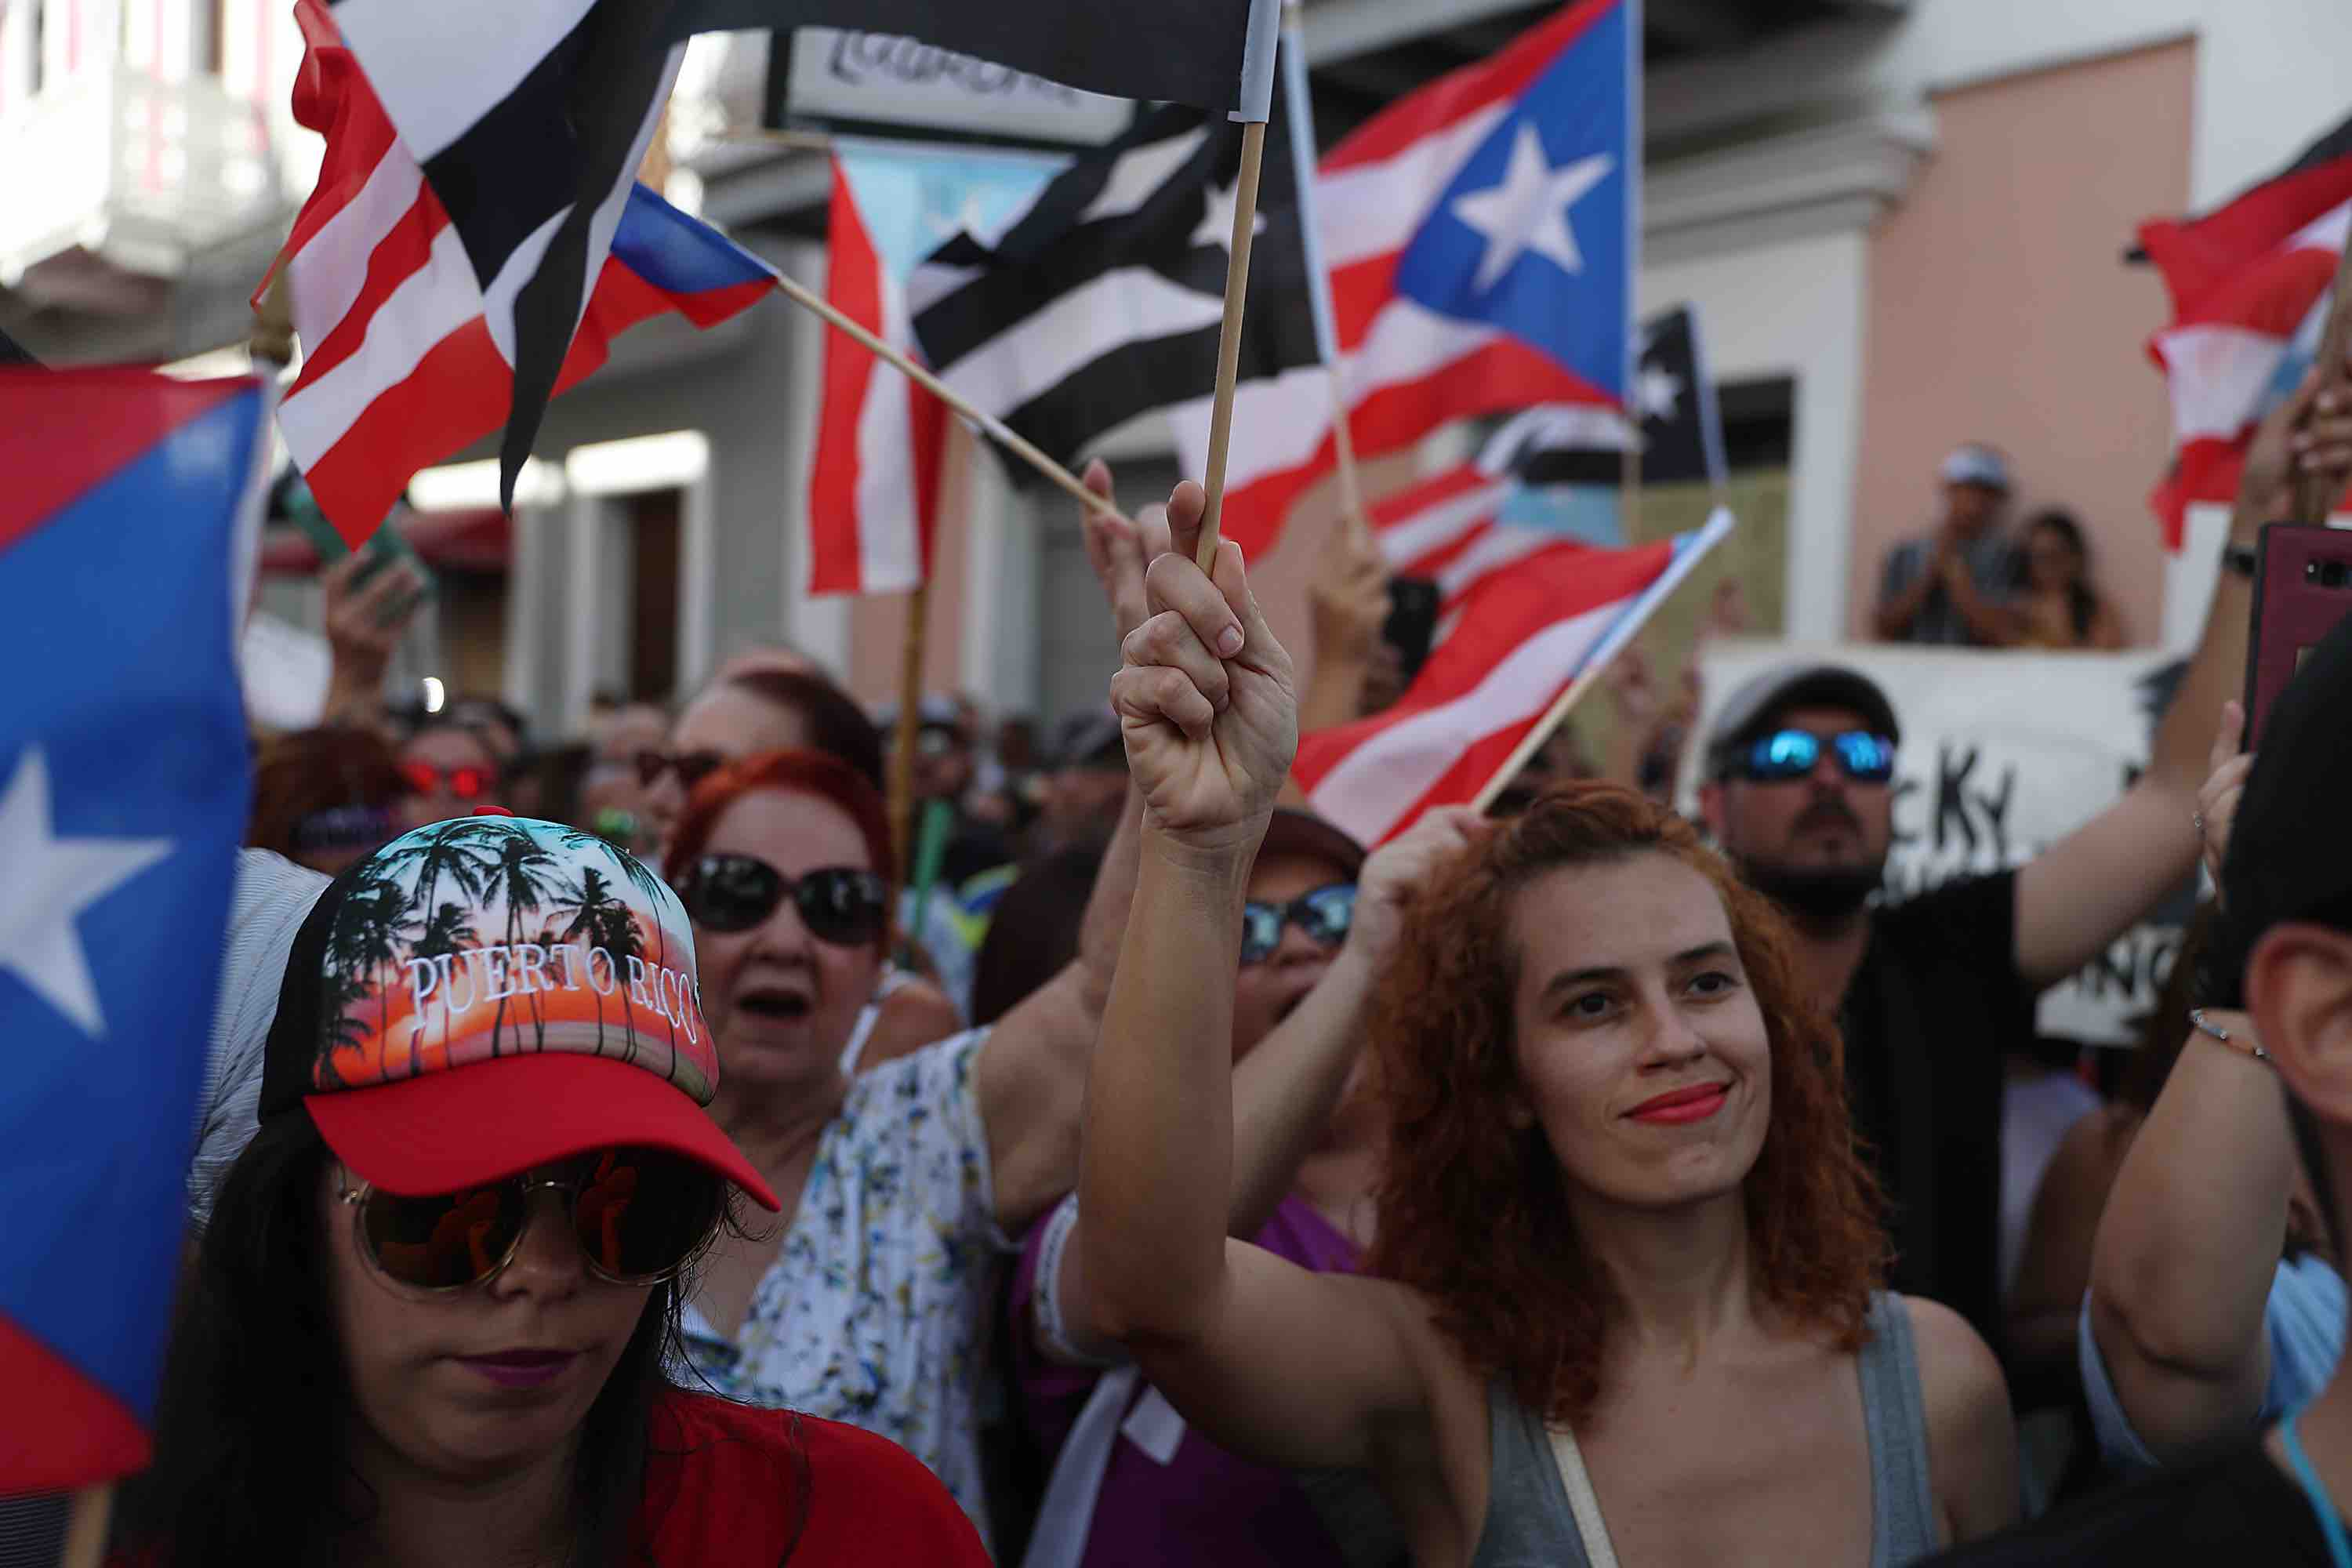 #ParoNacional: These Videos & Photos of Puerto Rico Today Show How Fed Up Boricuas Are With Rosselló